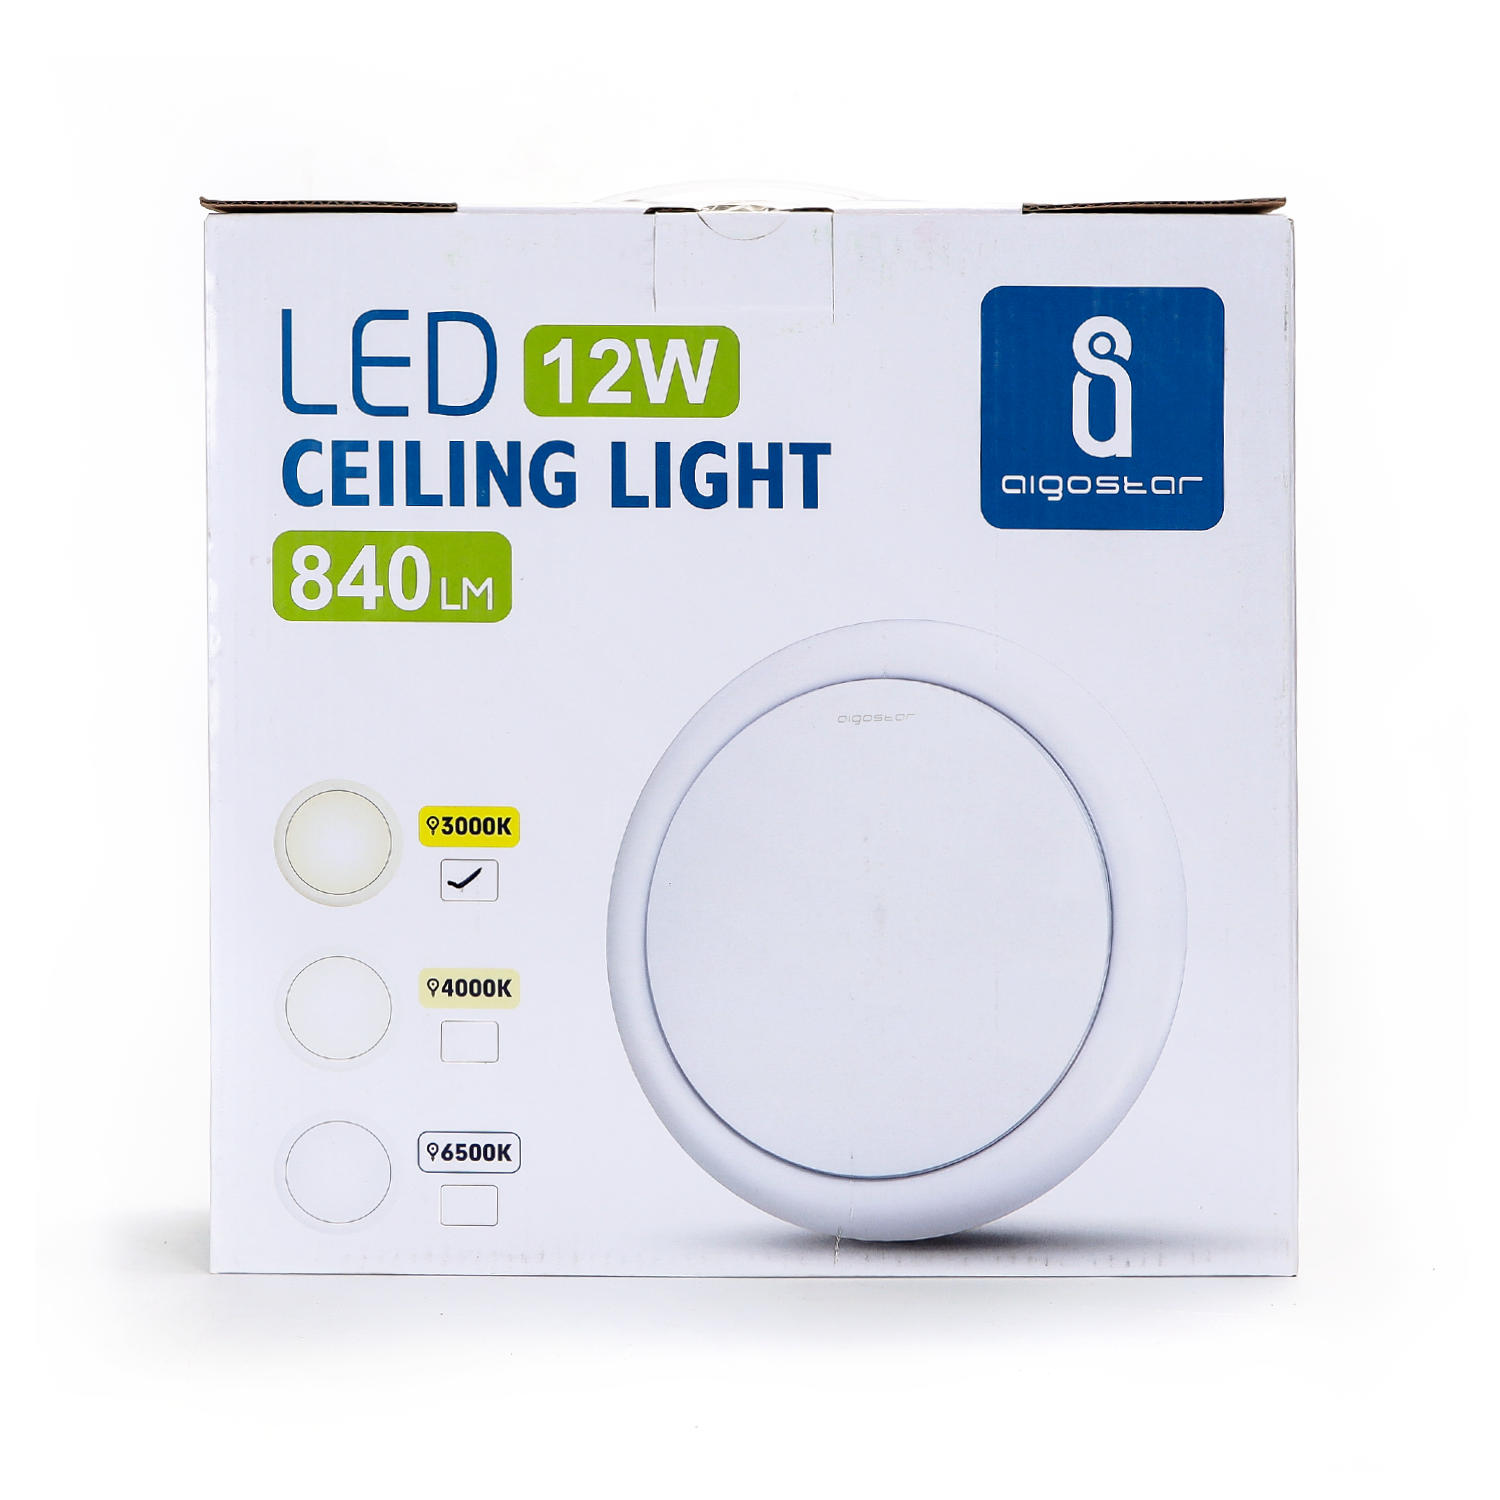 LED Plafond / ceiling lamp rond wit 12W - verpakking - 3000K warm wit